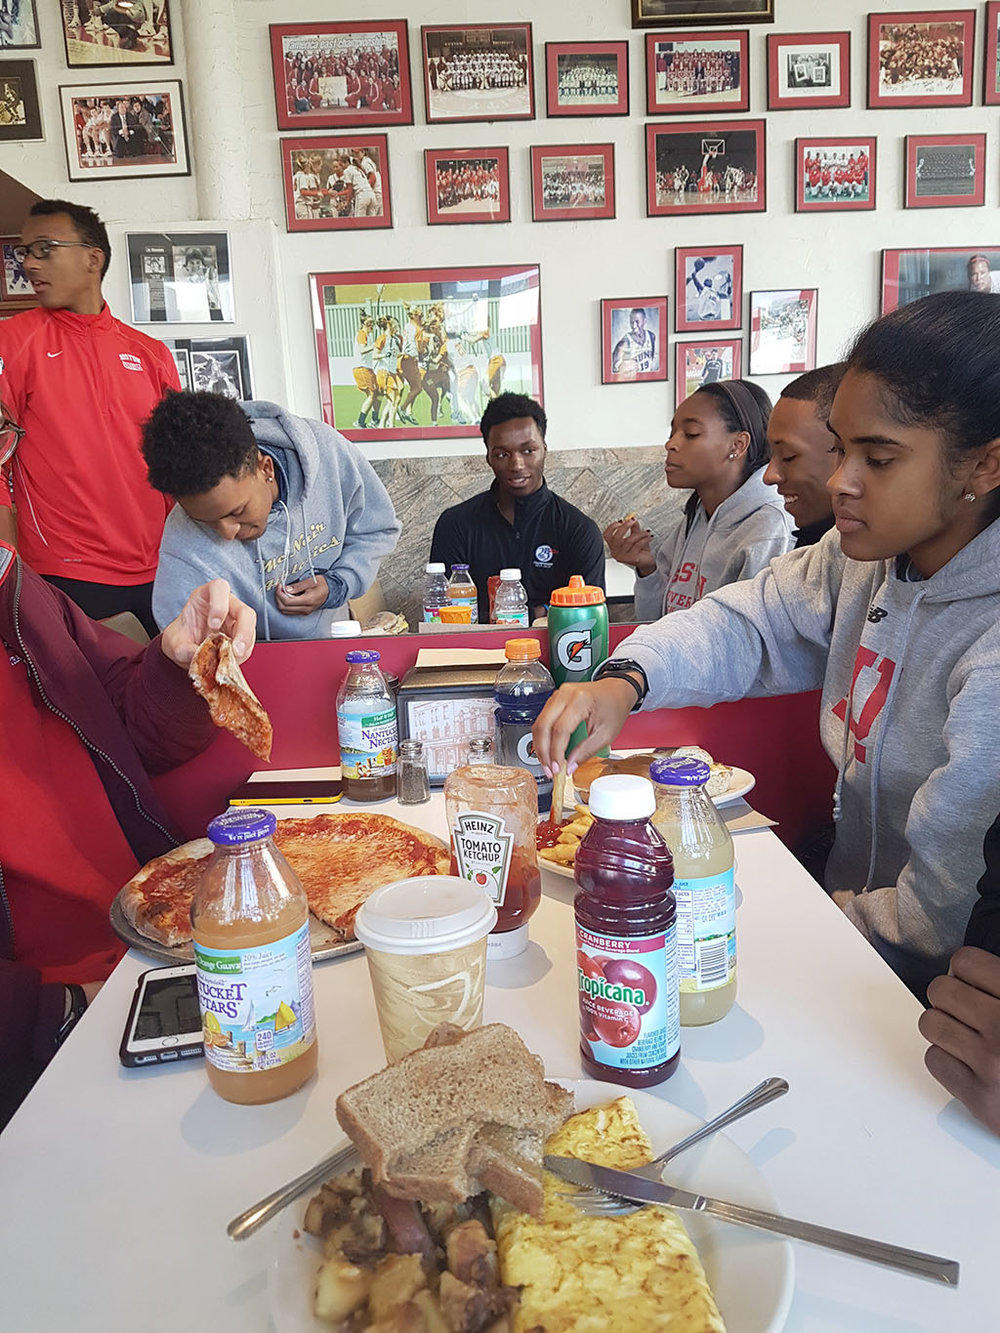 Boston University Track and Field Brunch